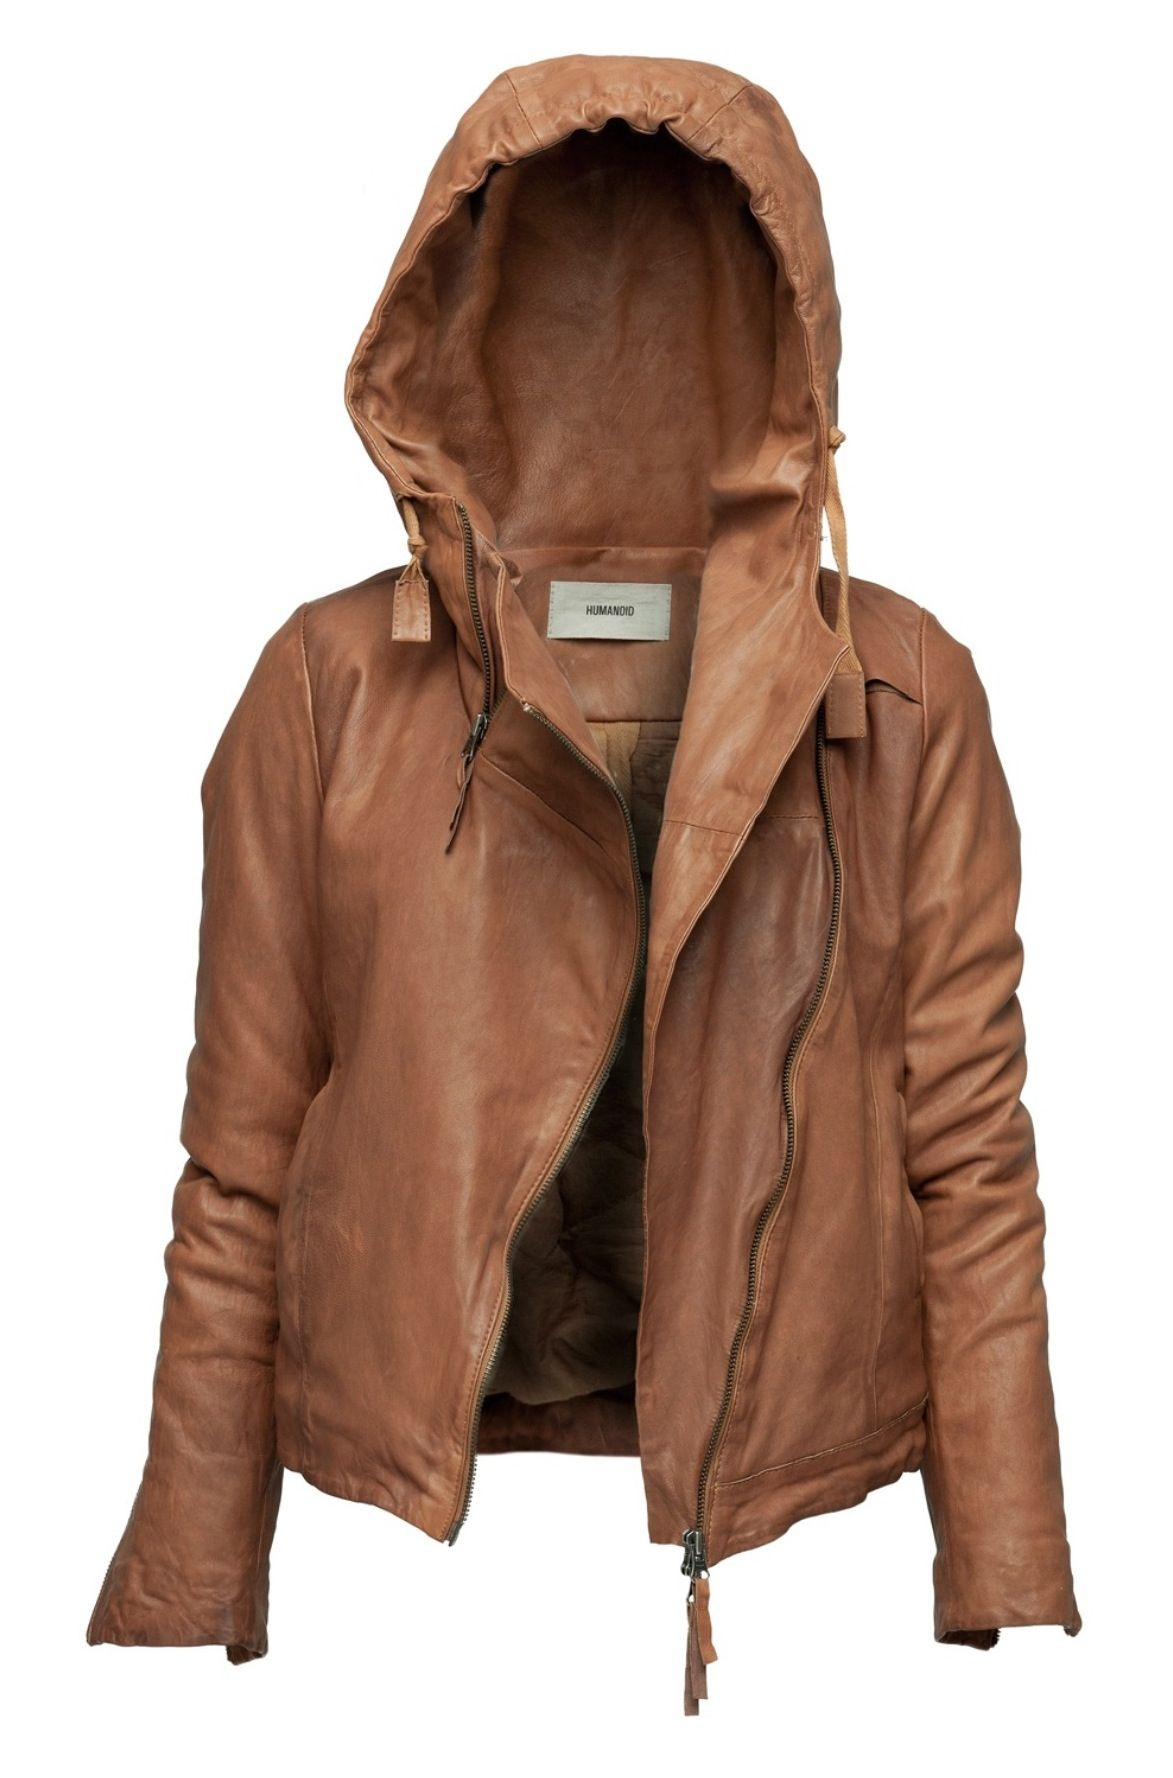 Where can I find this jacket? Leather hoodie